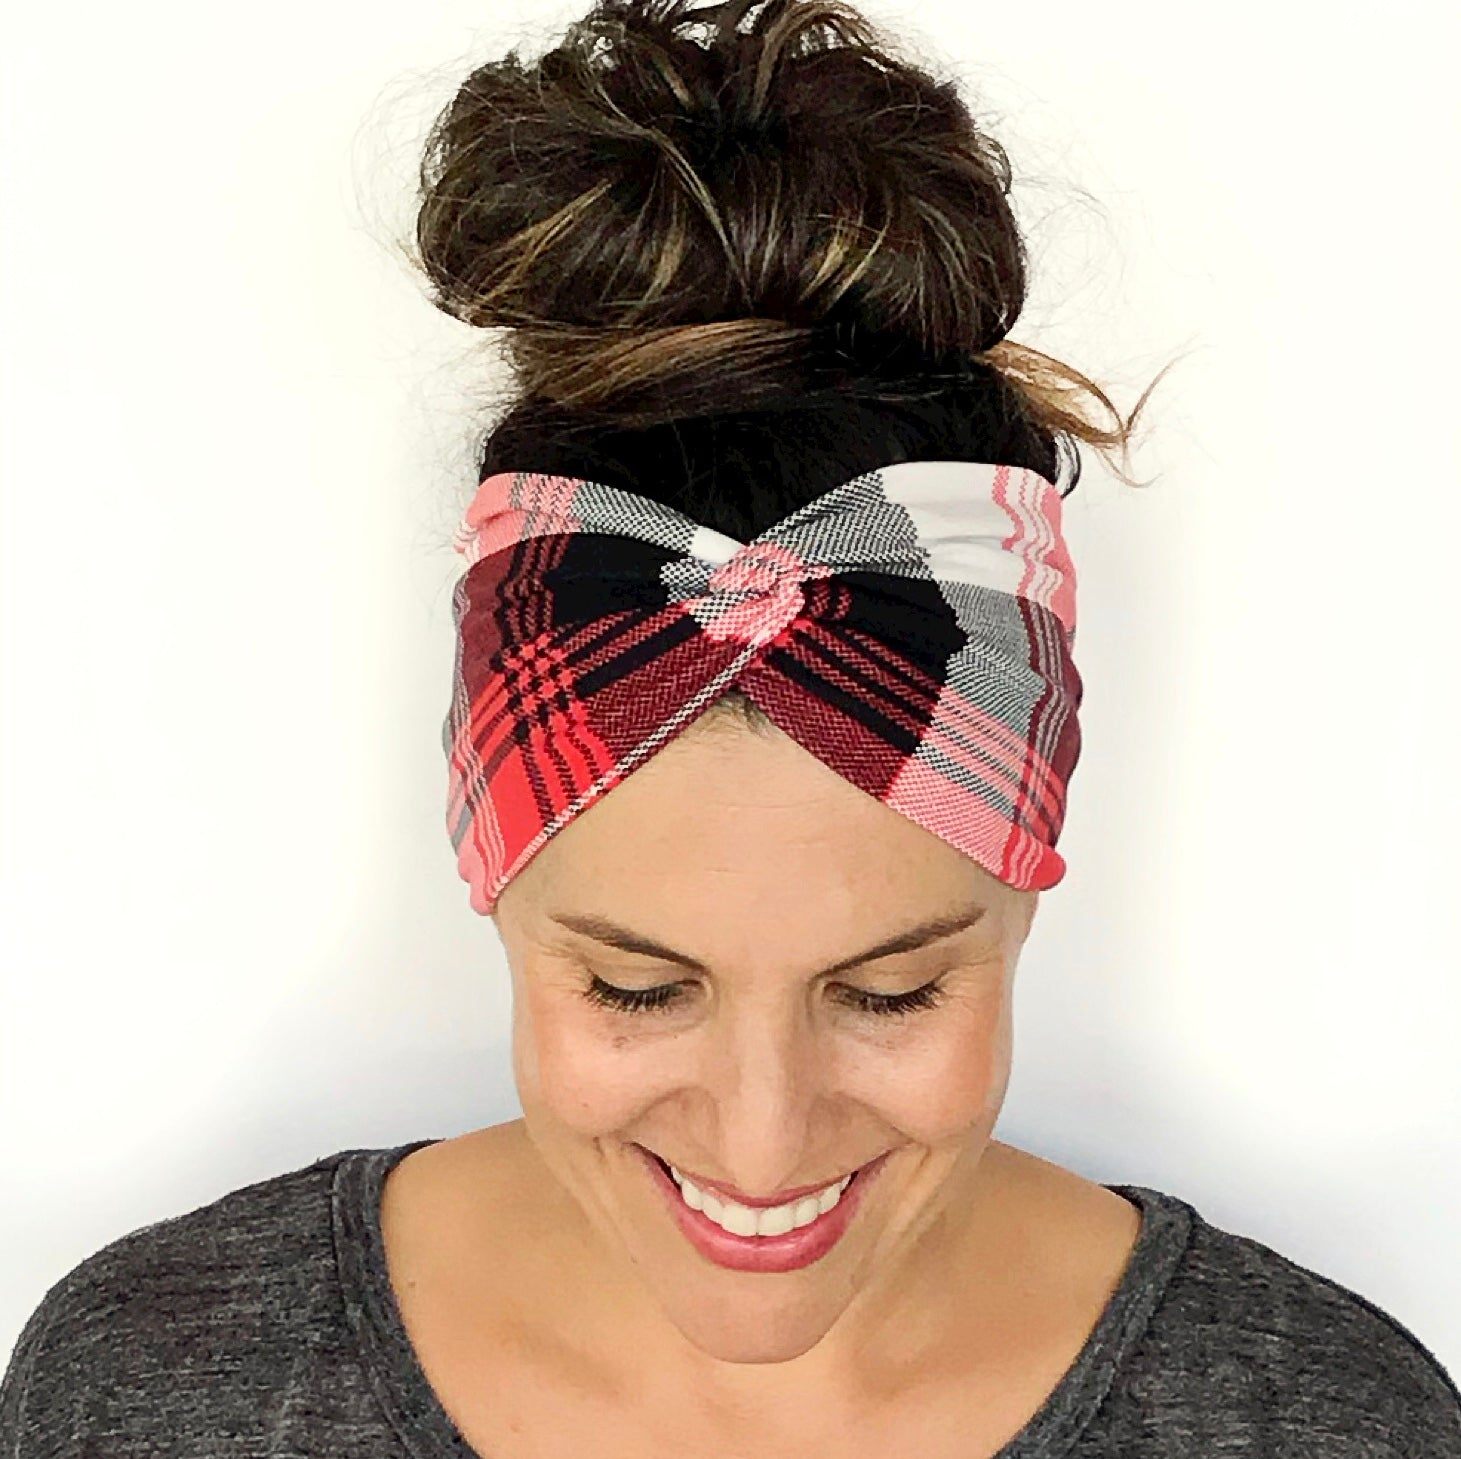 Tahoe Twisty Turban Headband